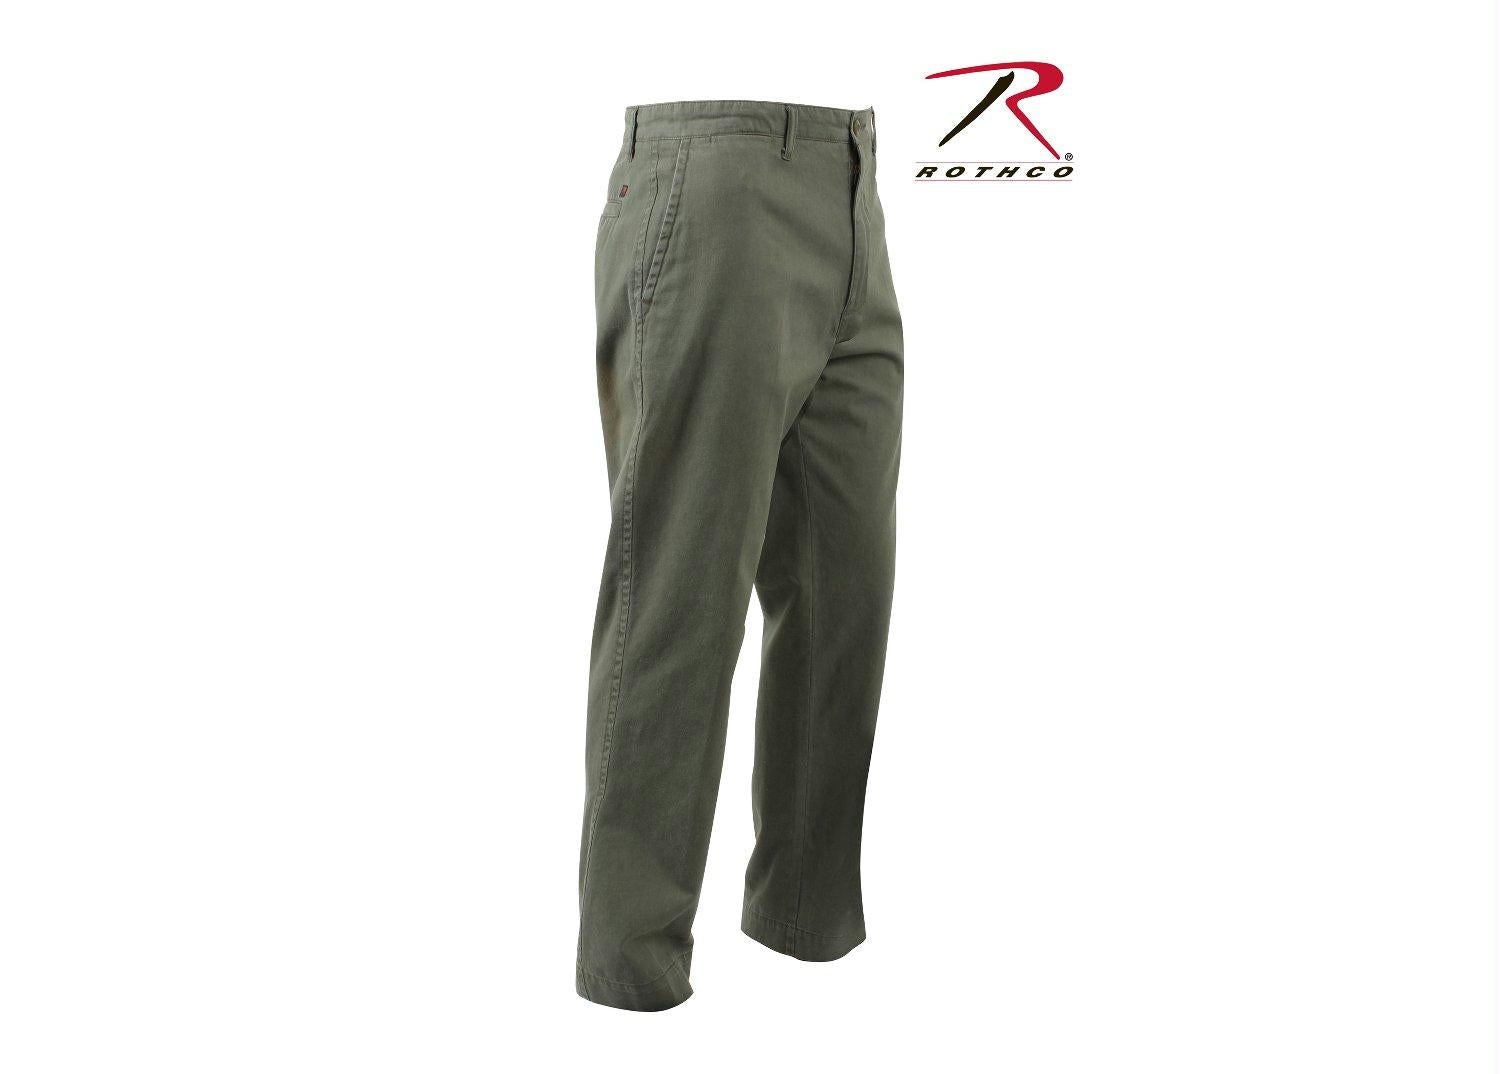 Rothco Deluxe 4-Pocket Chinos - Olive Drab / 30